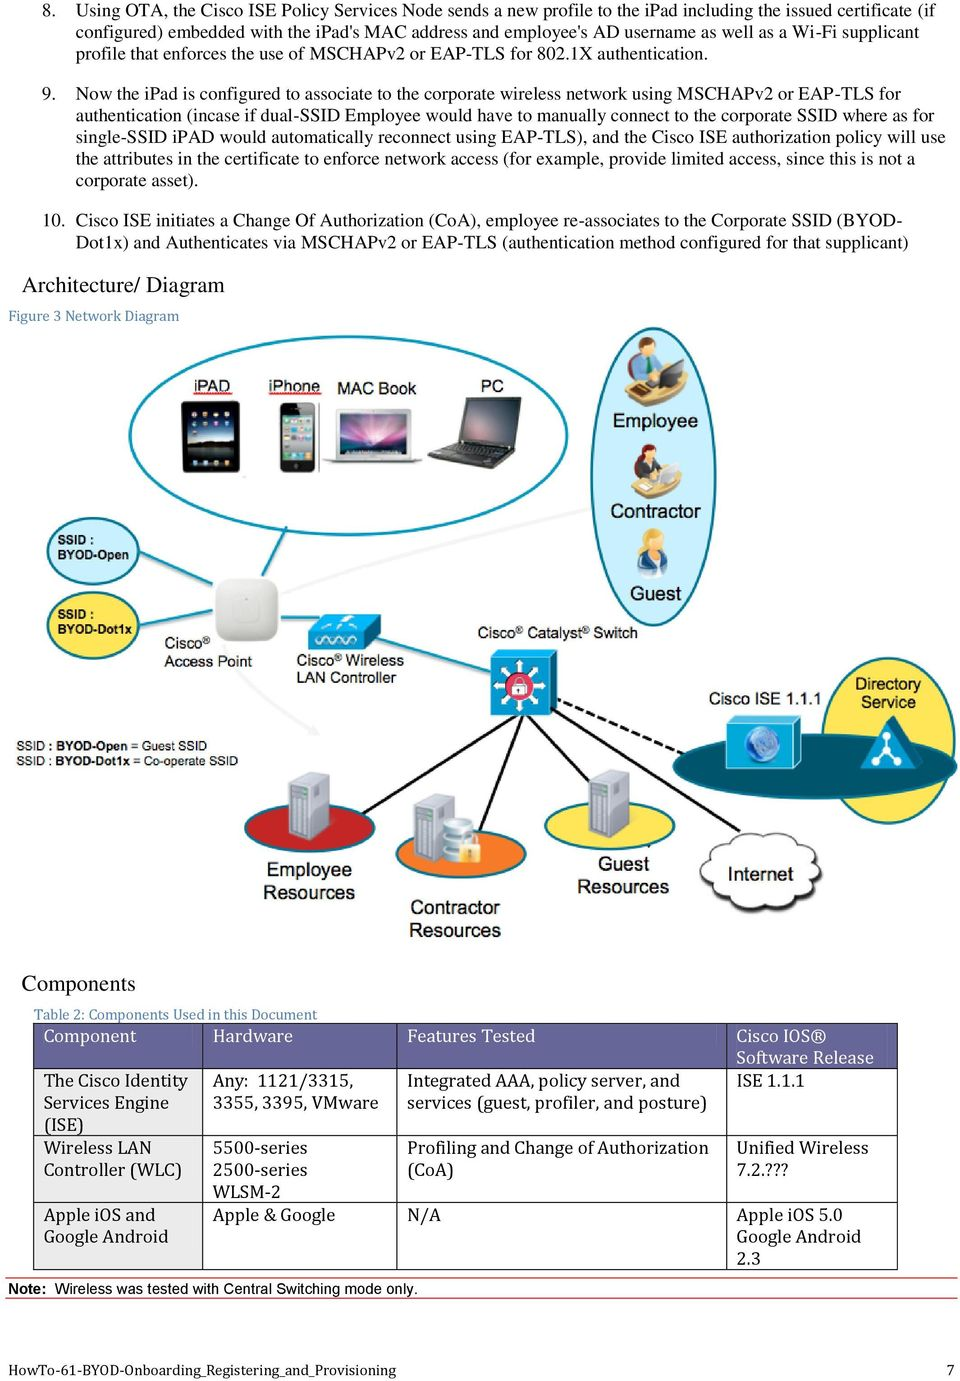 hight resolution of now the ipad is configured to associate to the corporate wireless network using mschapv2 or eap